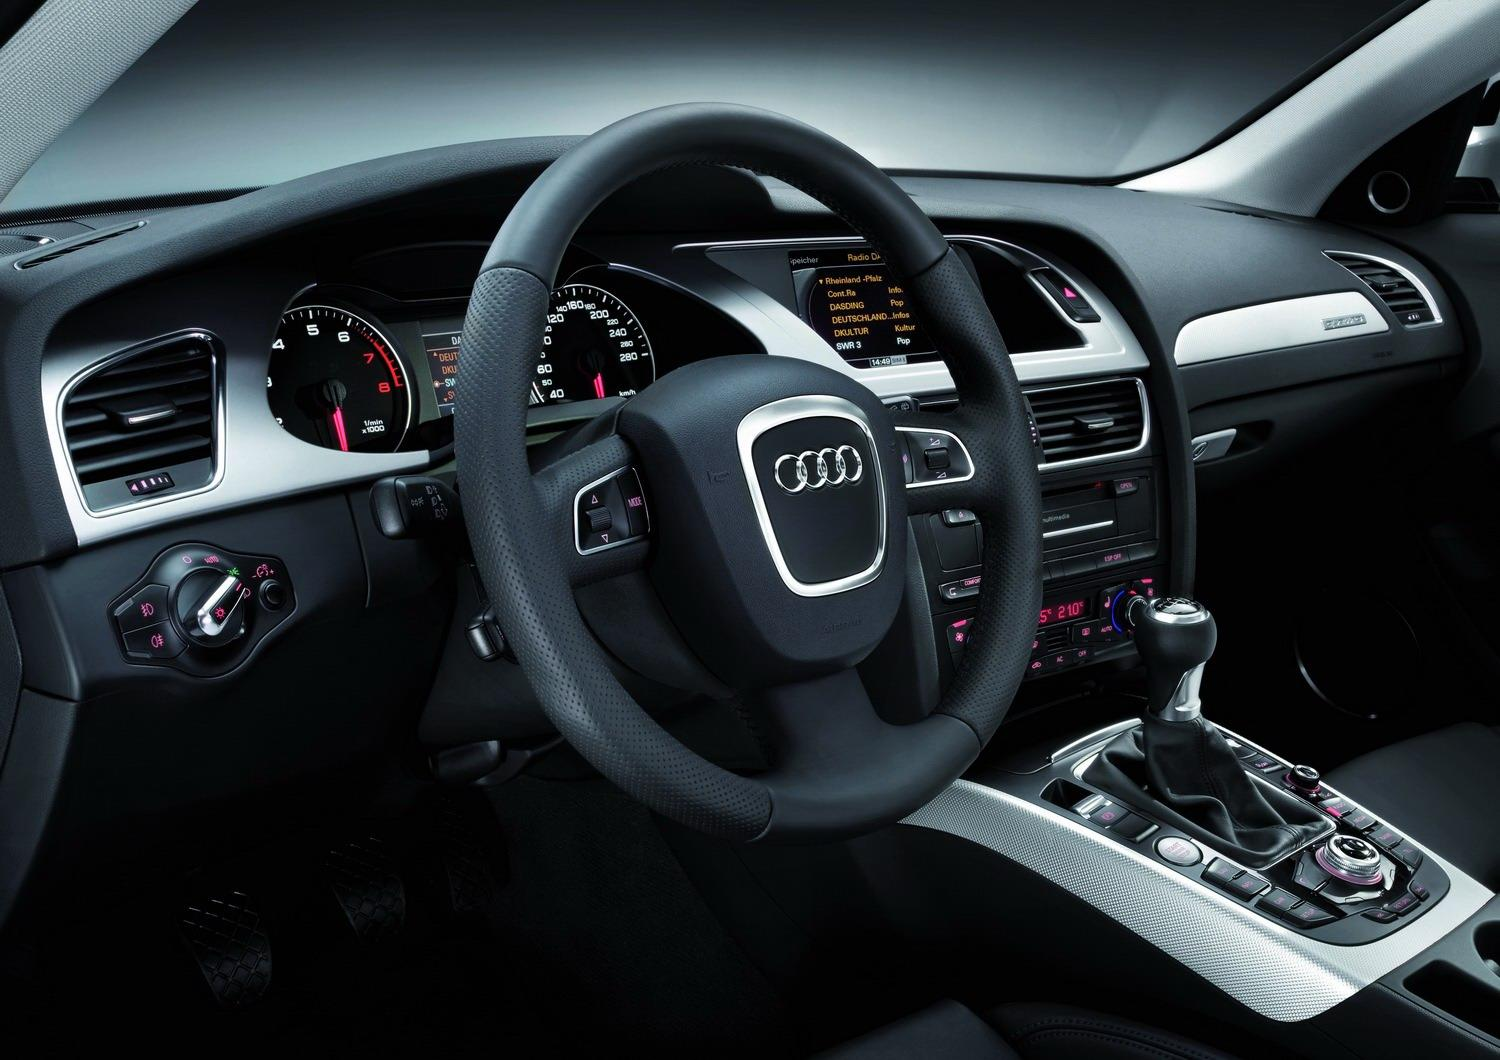 Audi a4 allroad 2010 interior img it s your auto for Lederen interieur audi a4